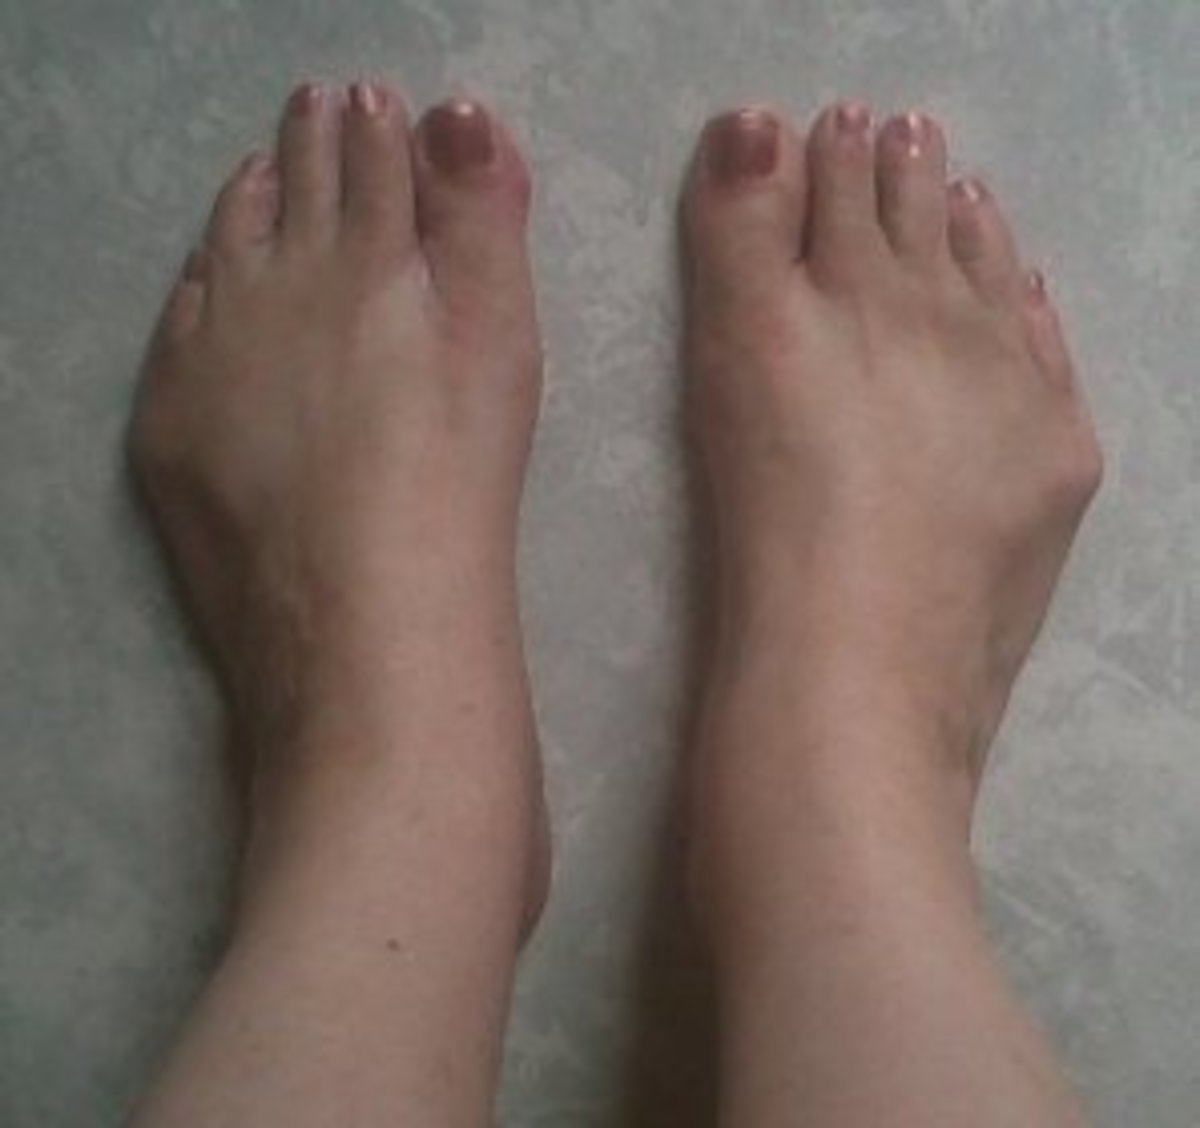 Flat, weird-looking feet, but so what, thank God I can walk and run...